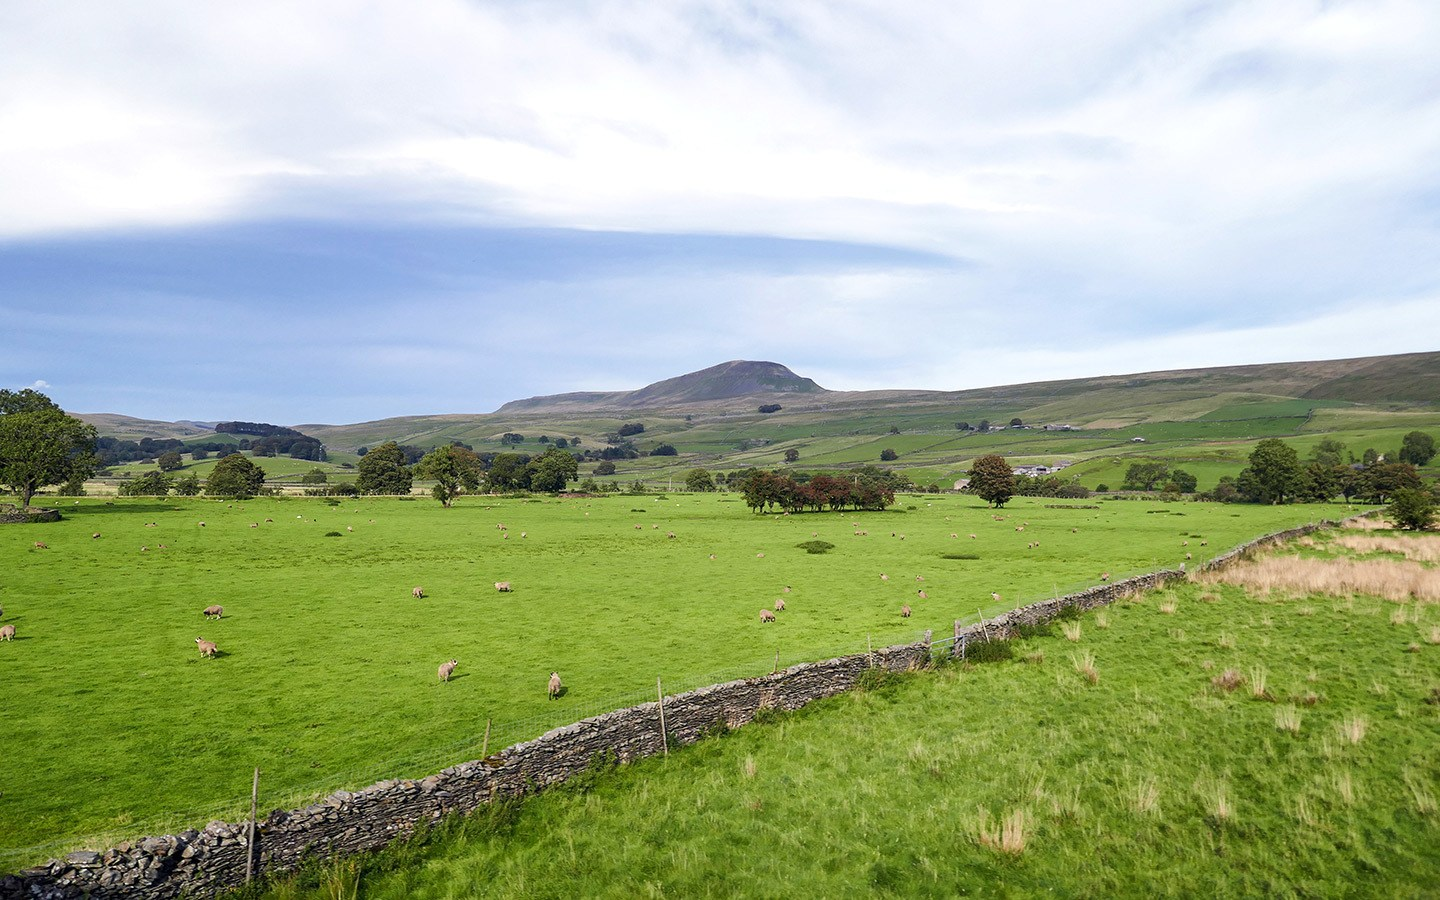 Views along the Settle to Carlisle Railway route